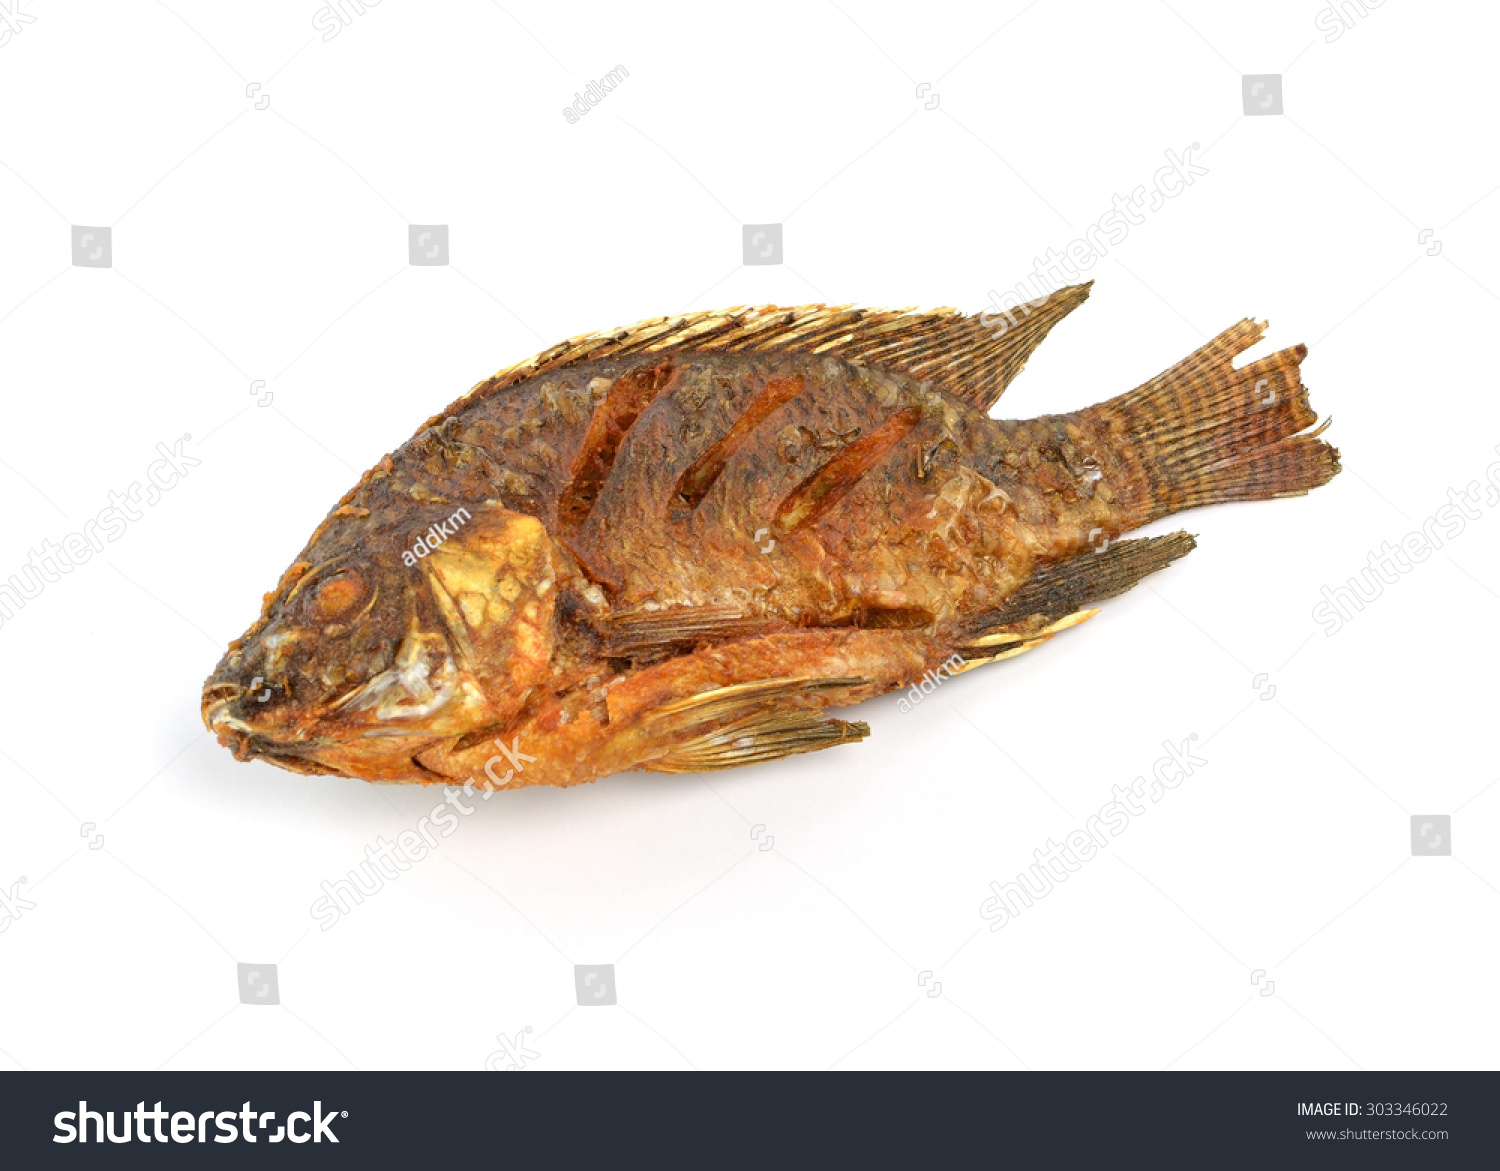 Fried tilapia fish fried isolated on white background for Fried tilapia fish